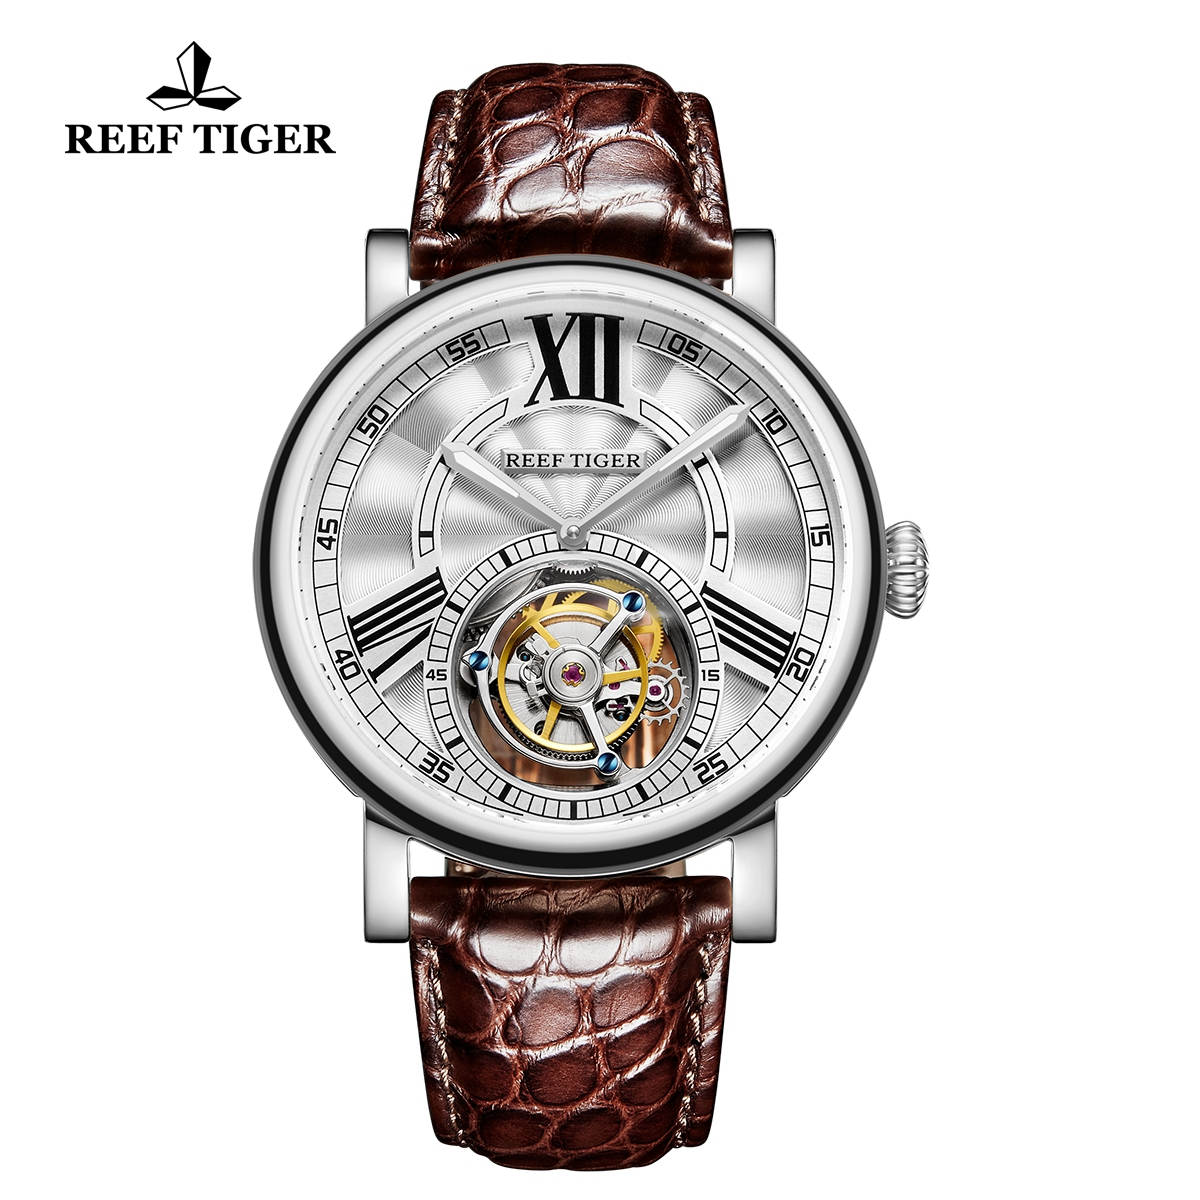 Reef Tiger Artist Graver Fashion Steel Leather Strap White Dial Tourbillon Watch RGA1999-YWS